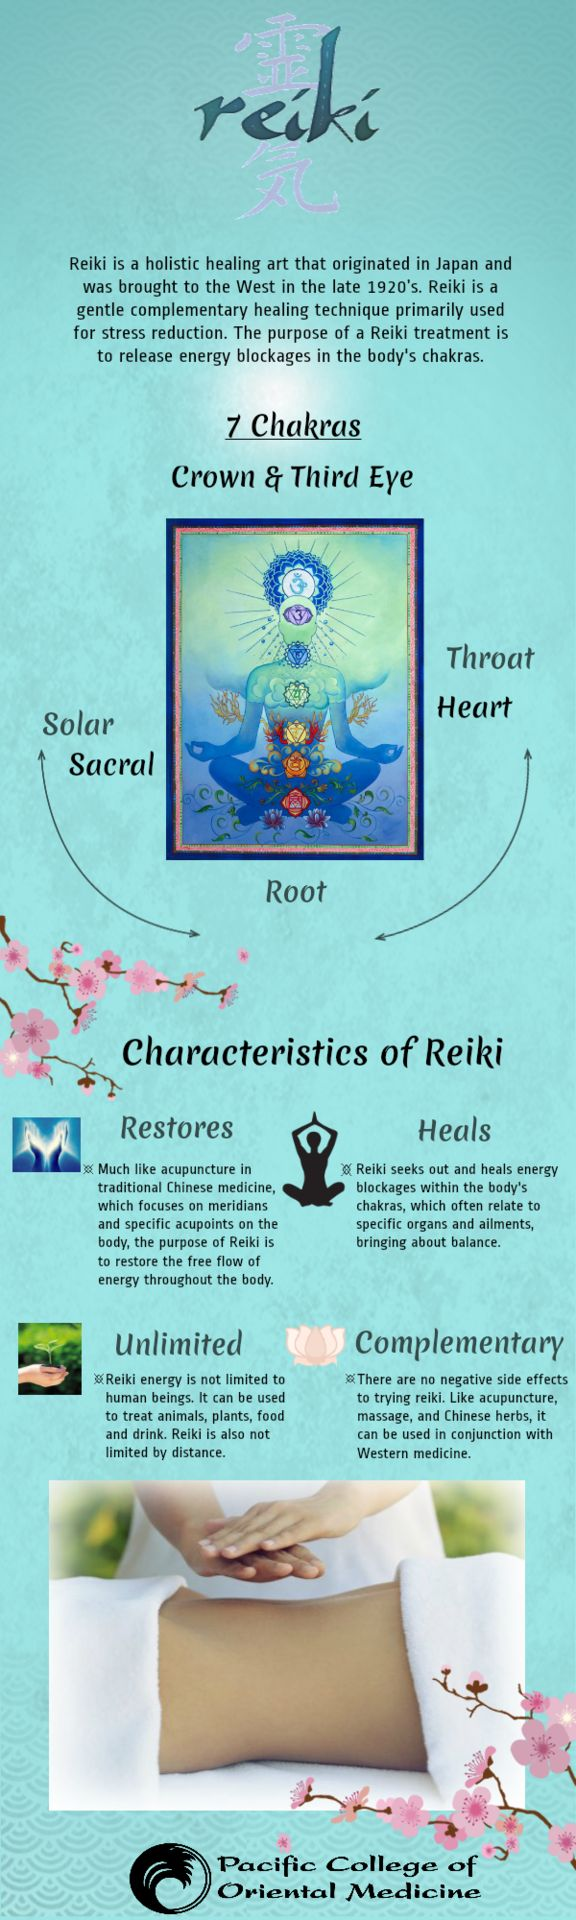 Have you heard of Reiki? Check it out!: Energy Healing Spirituality, Energy Work Reiki, Energy Spirituality, Reiki Chakras, Energy Reiki Chakra Auras, Healing Energy, Energy Healing Reiki, Reiki Room, Reiki Energy